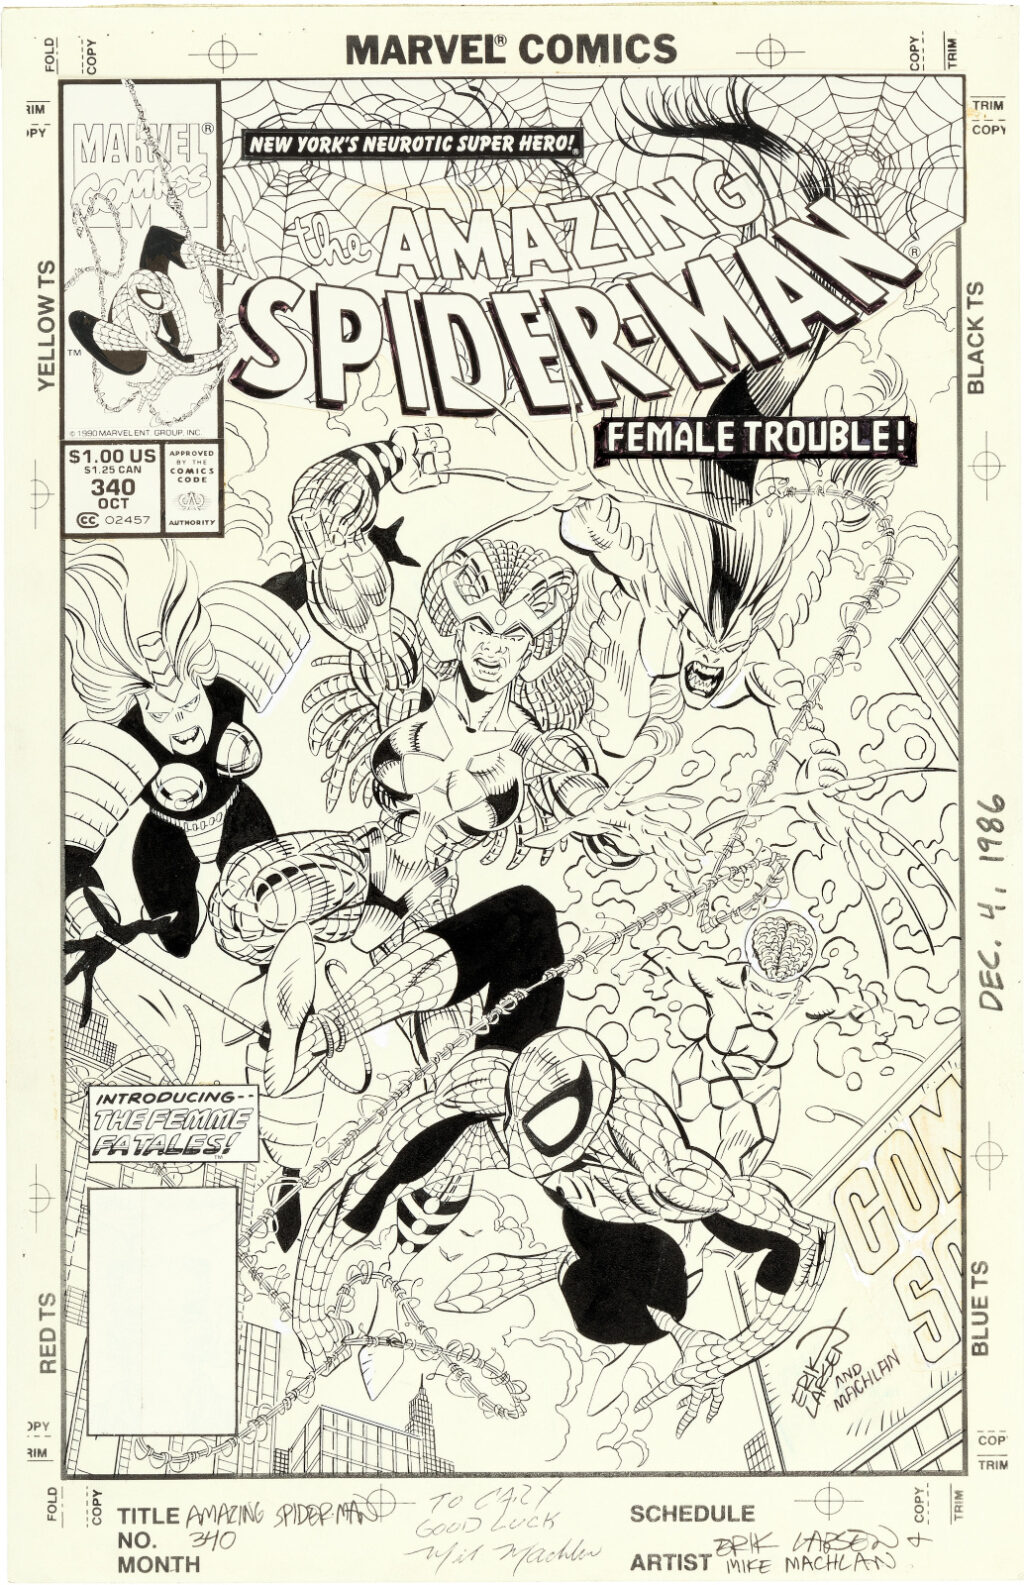 Amazing Spider Man issue 340 cover by Erik Larsen and Mike Machlan